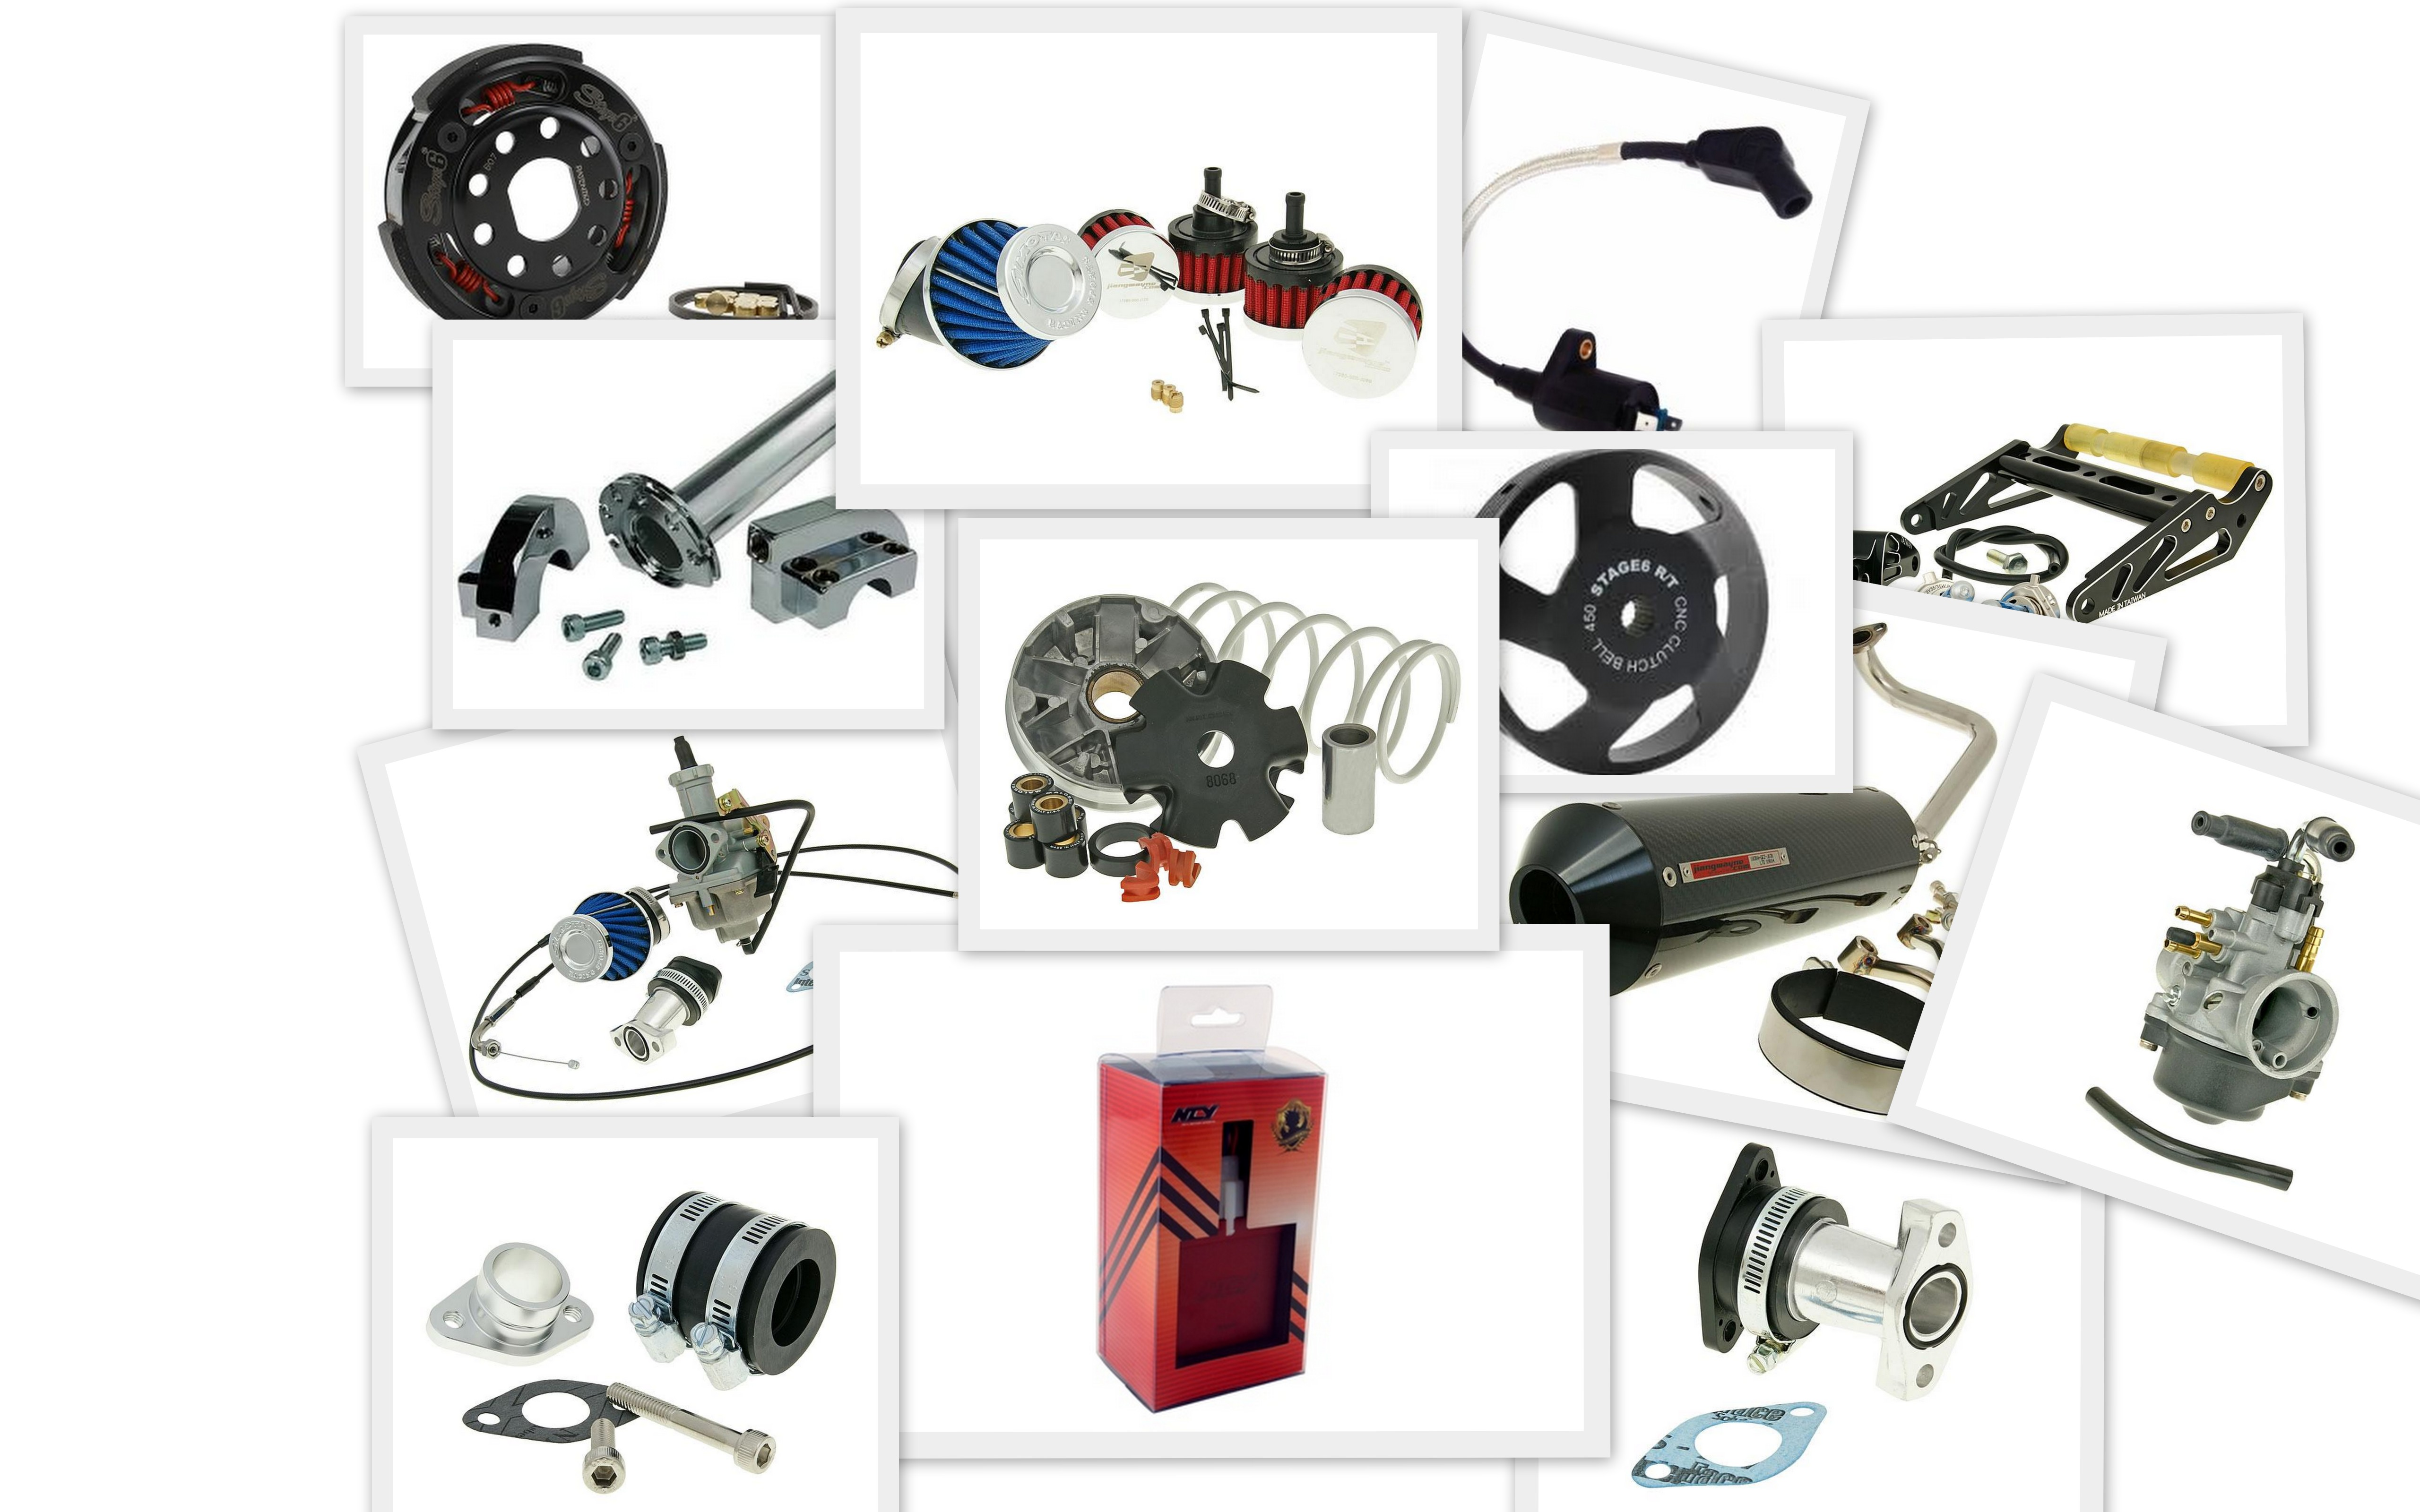 New Honda Ruckus Parts | Scoot Power from Scootertronics